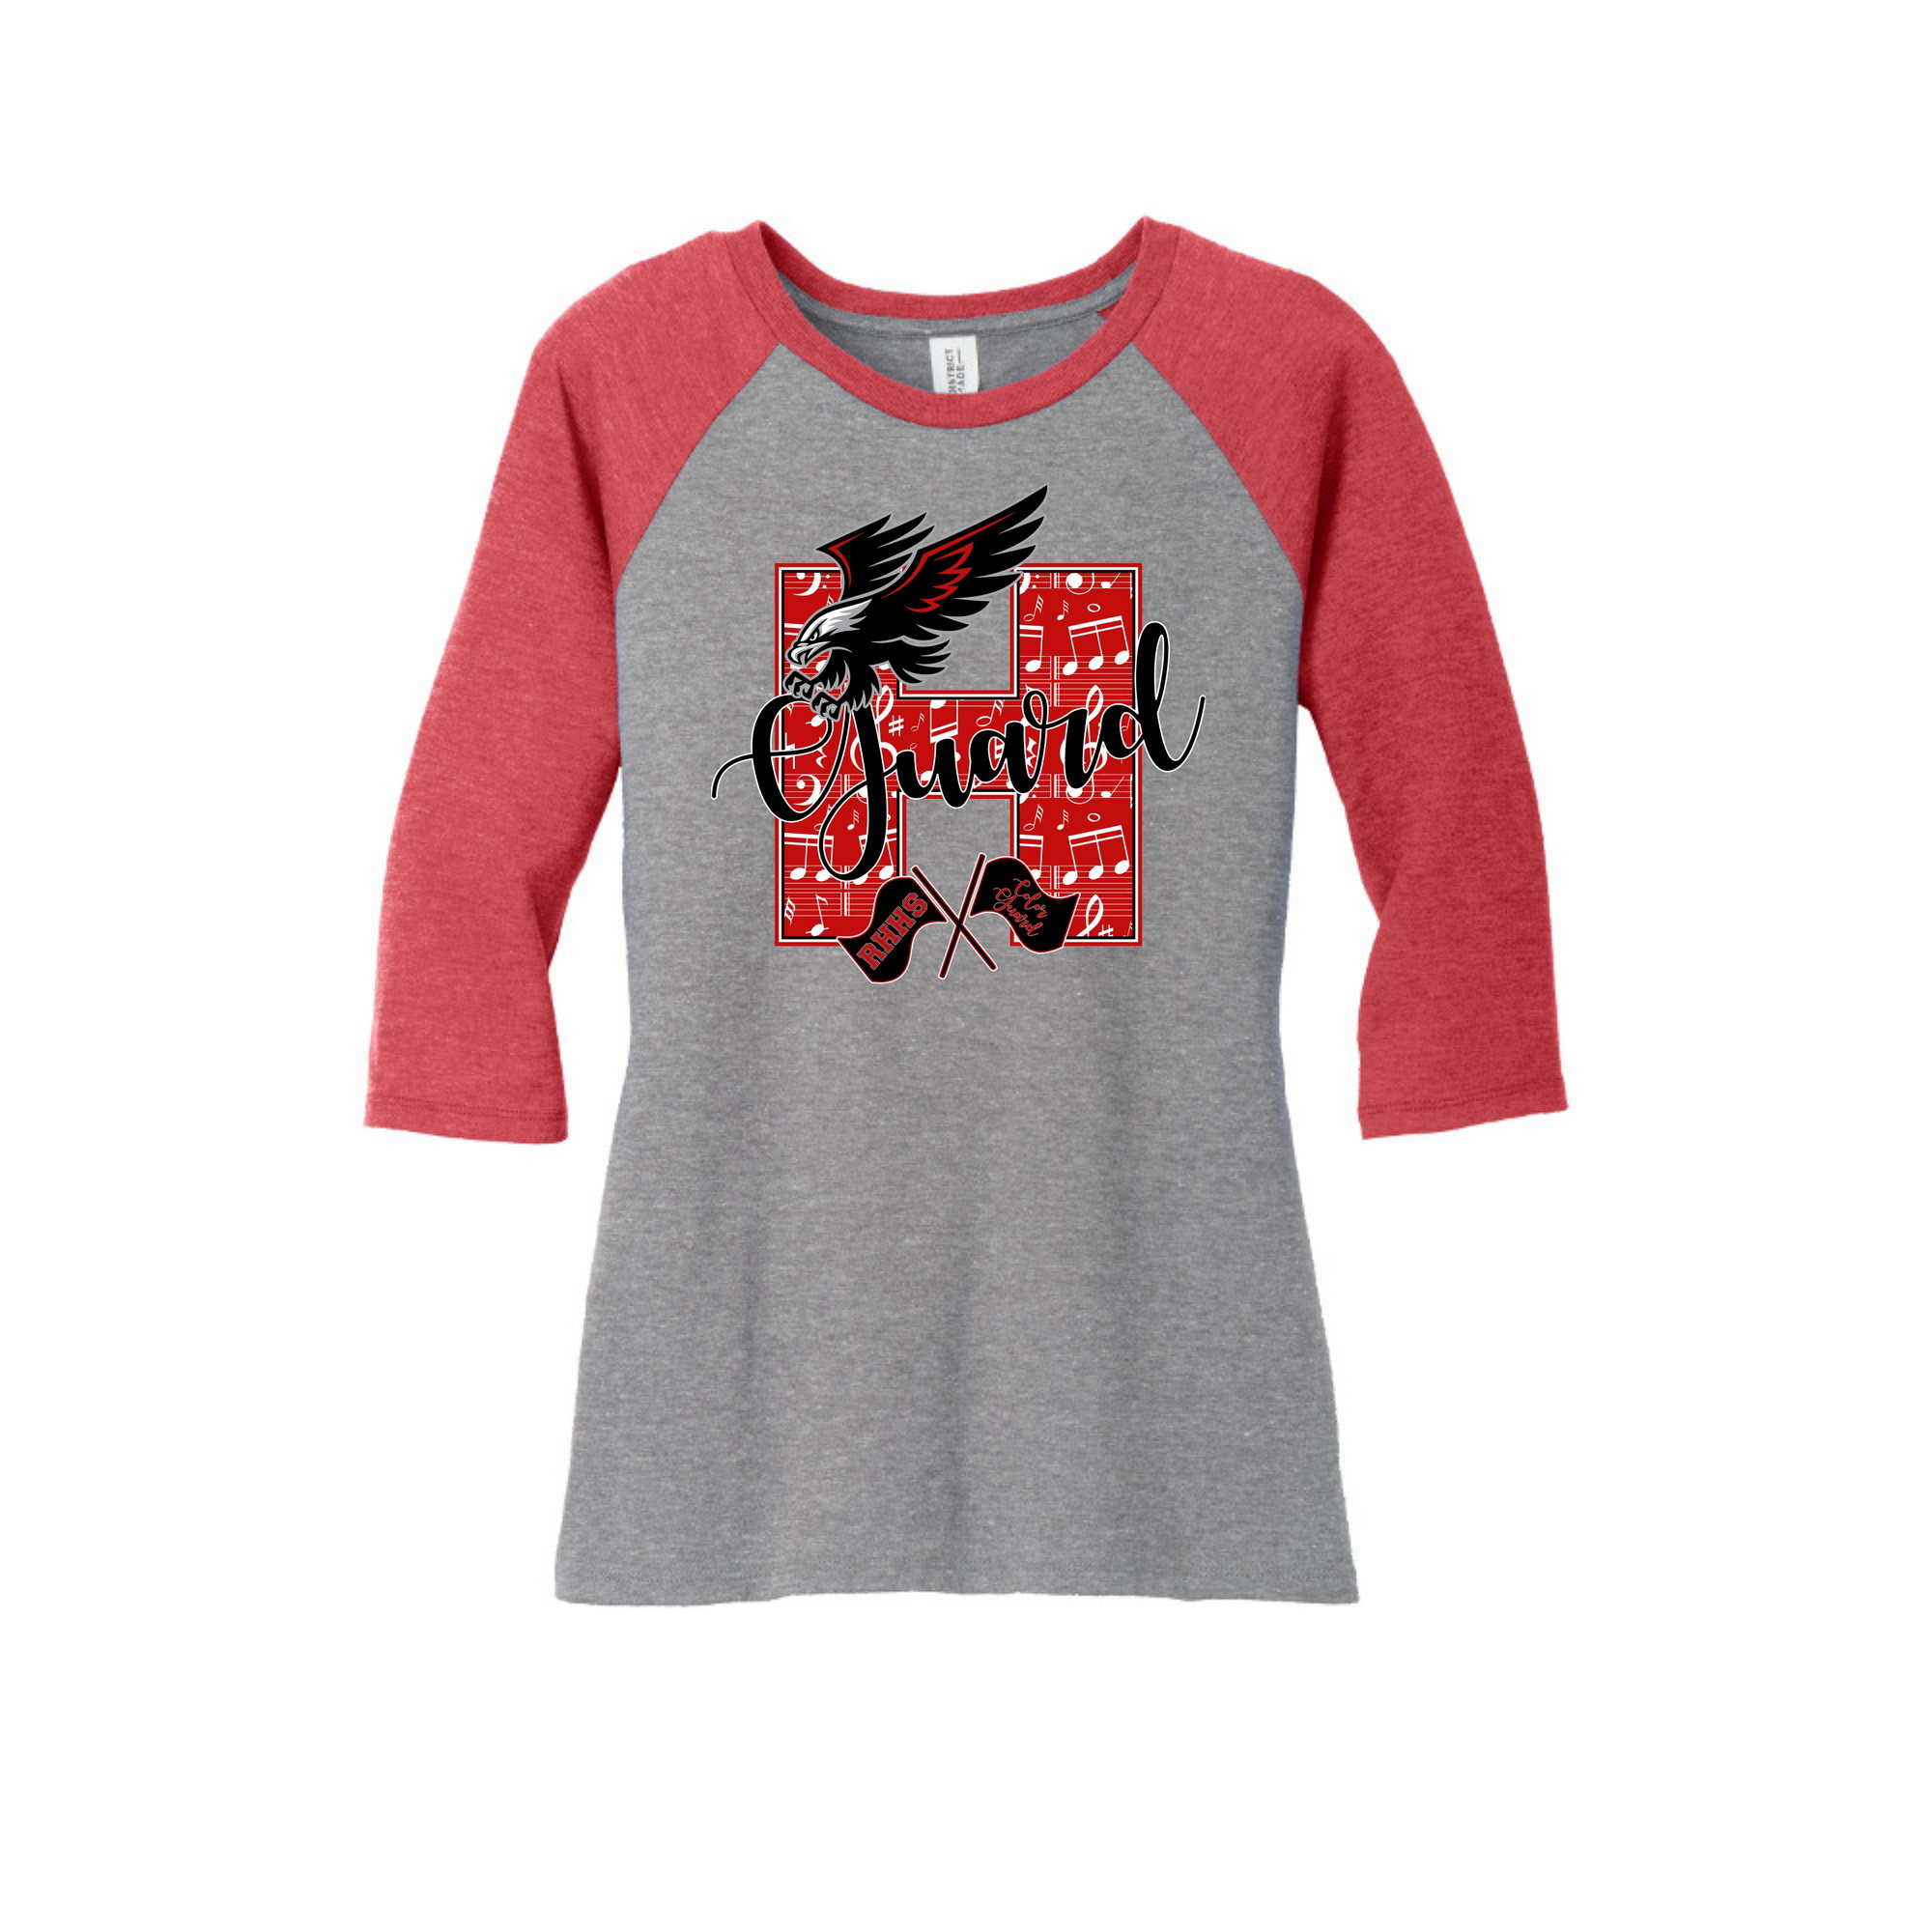 Ladies raglan shirt